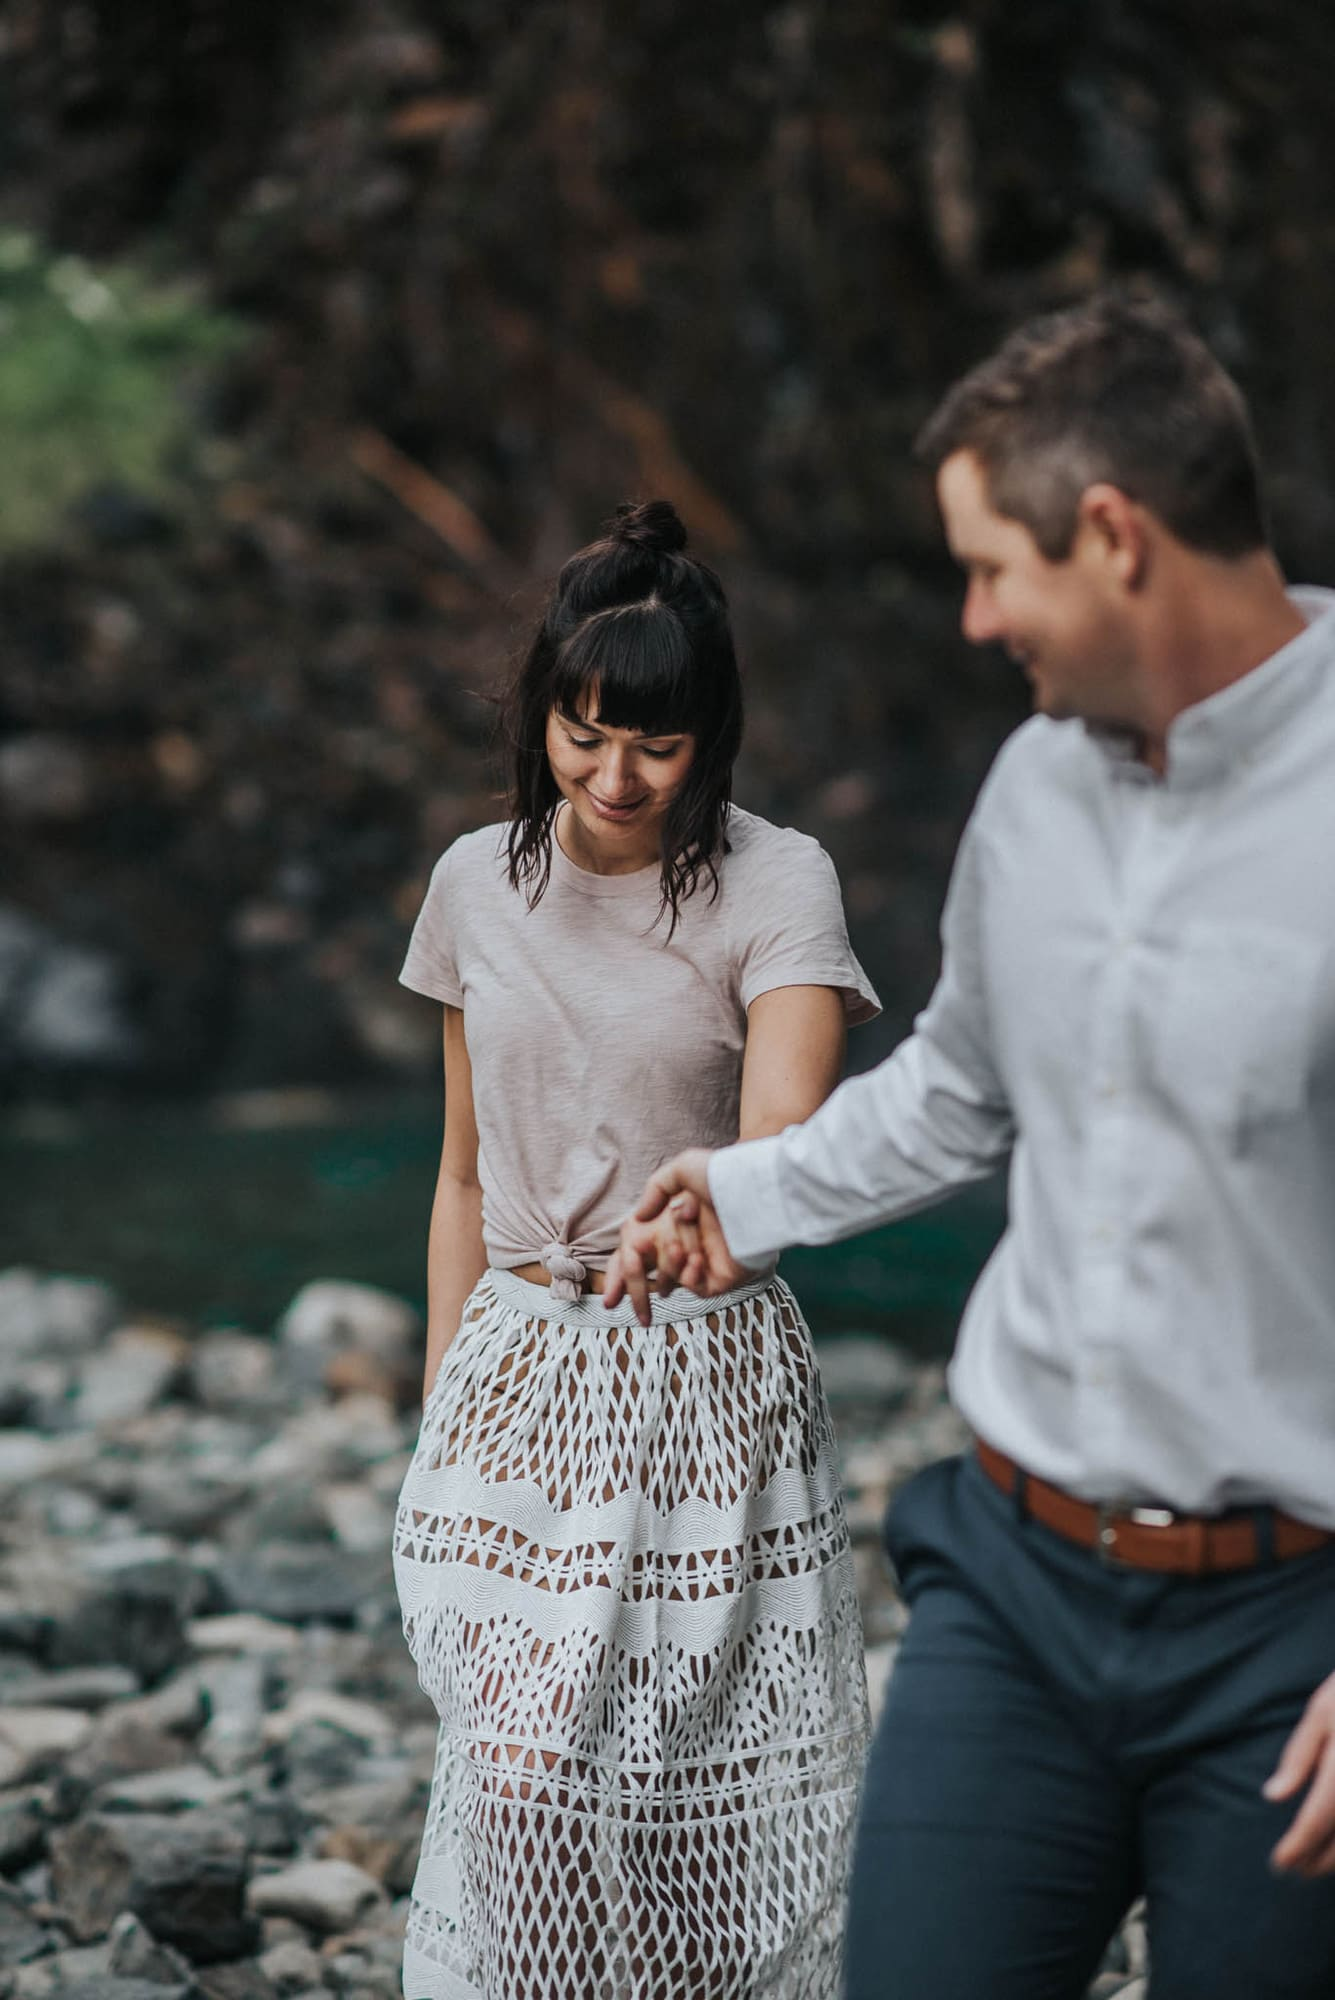 here is a photo of a sweet couple's engagement photos at franklin falls in snoqualmie pass washington